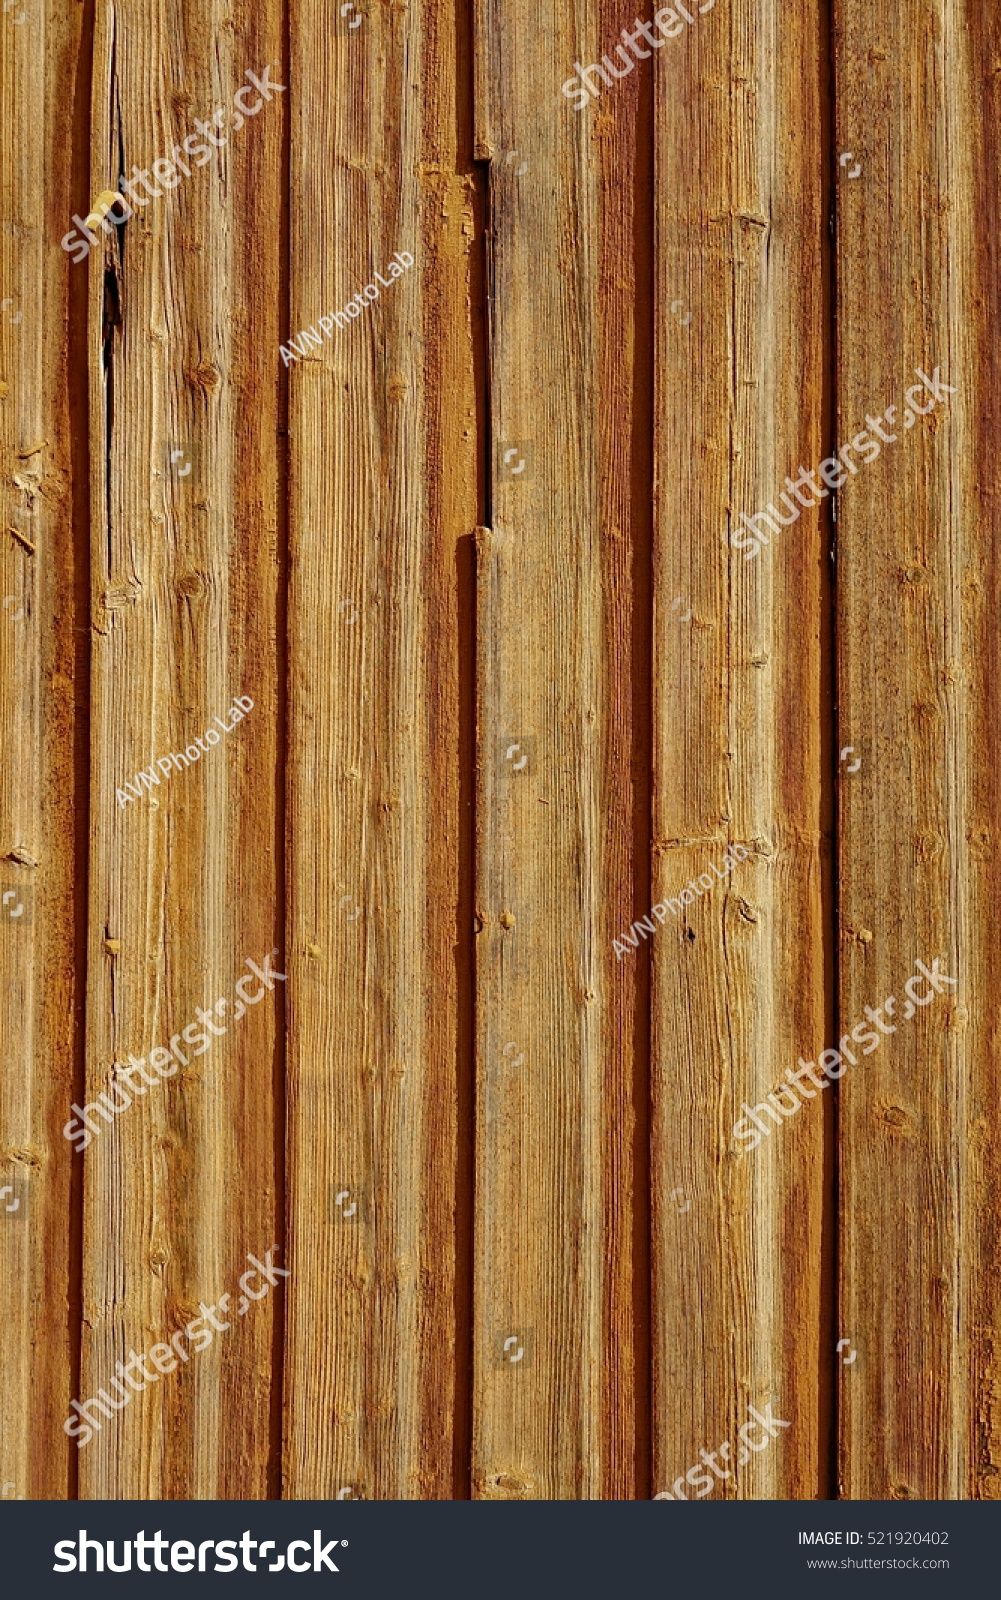 Vertical Wood Slat Wall Barn Wooden Wall Planking Texture Reclaimed Stock Photo Edit Now